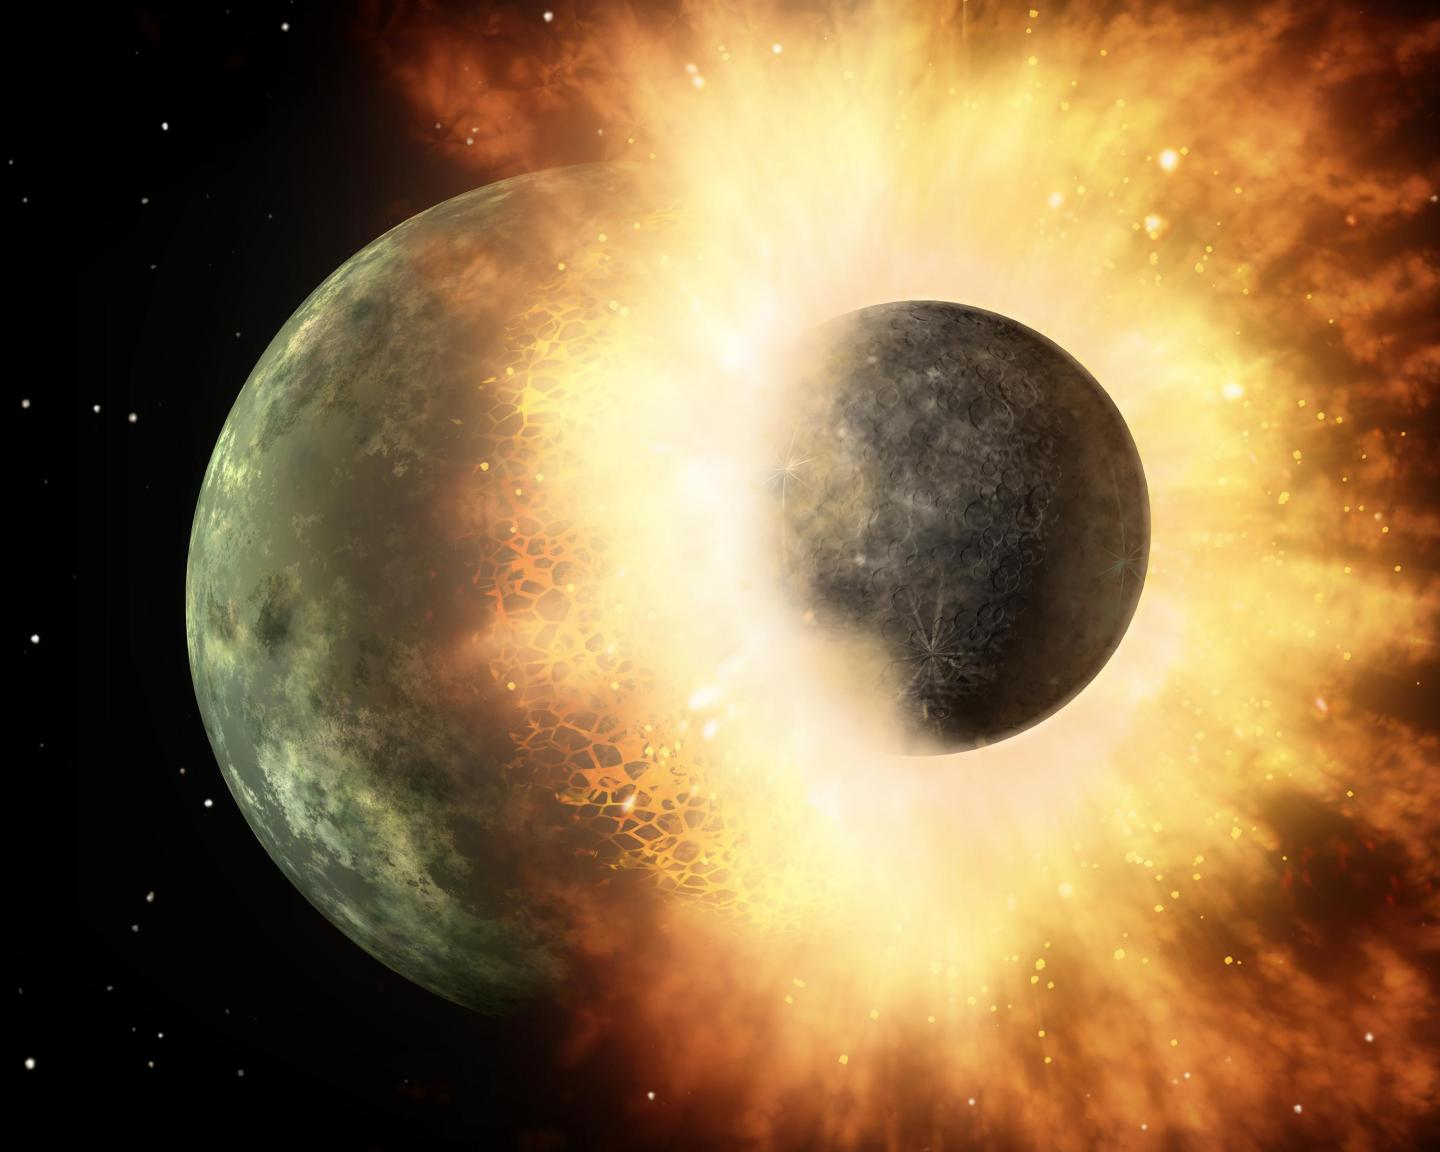 New Machine Learning Approach Can be Used to Tell if Planetary Systems are Stable or Not